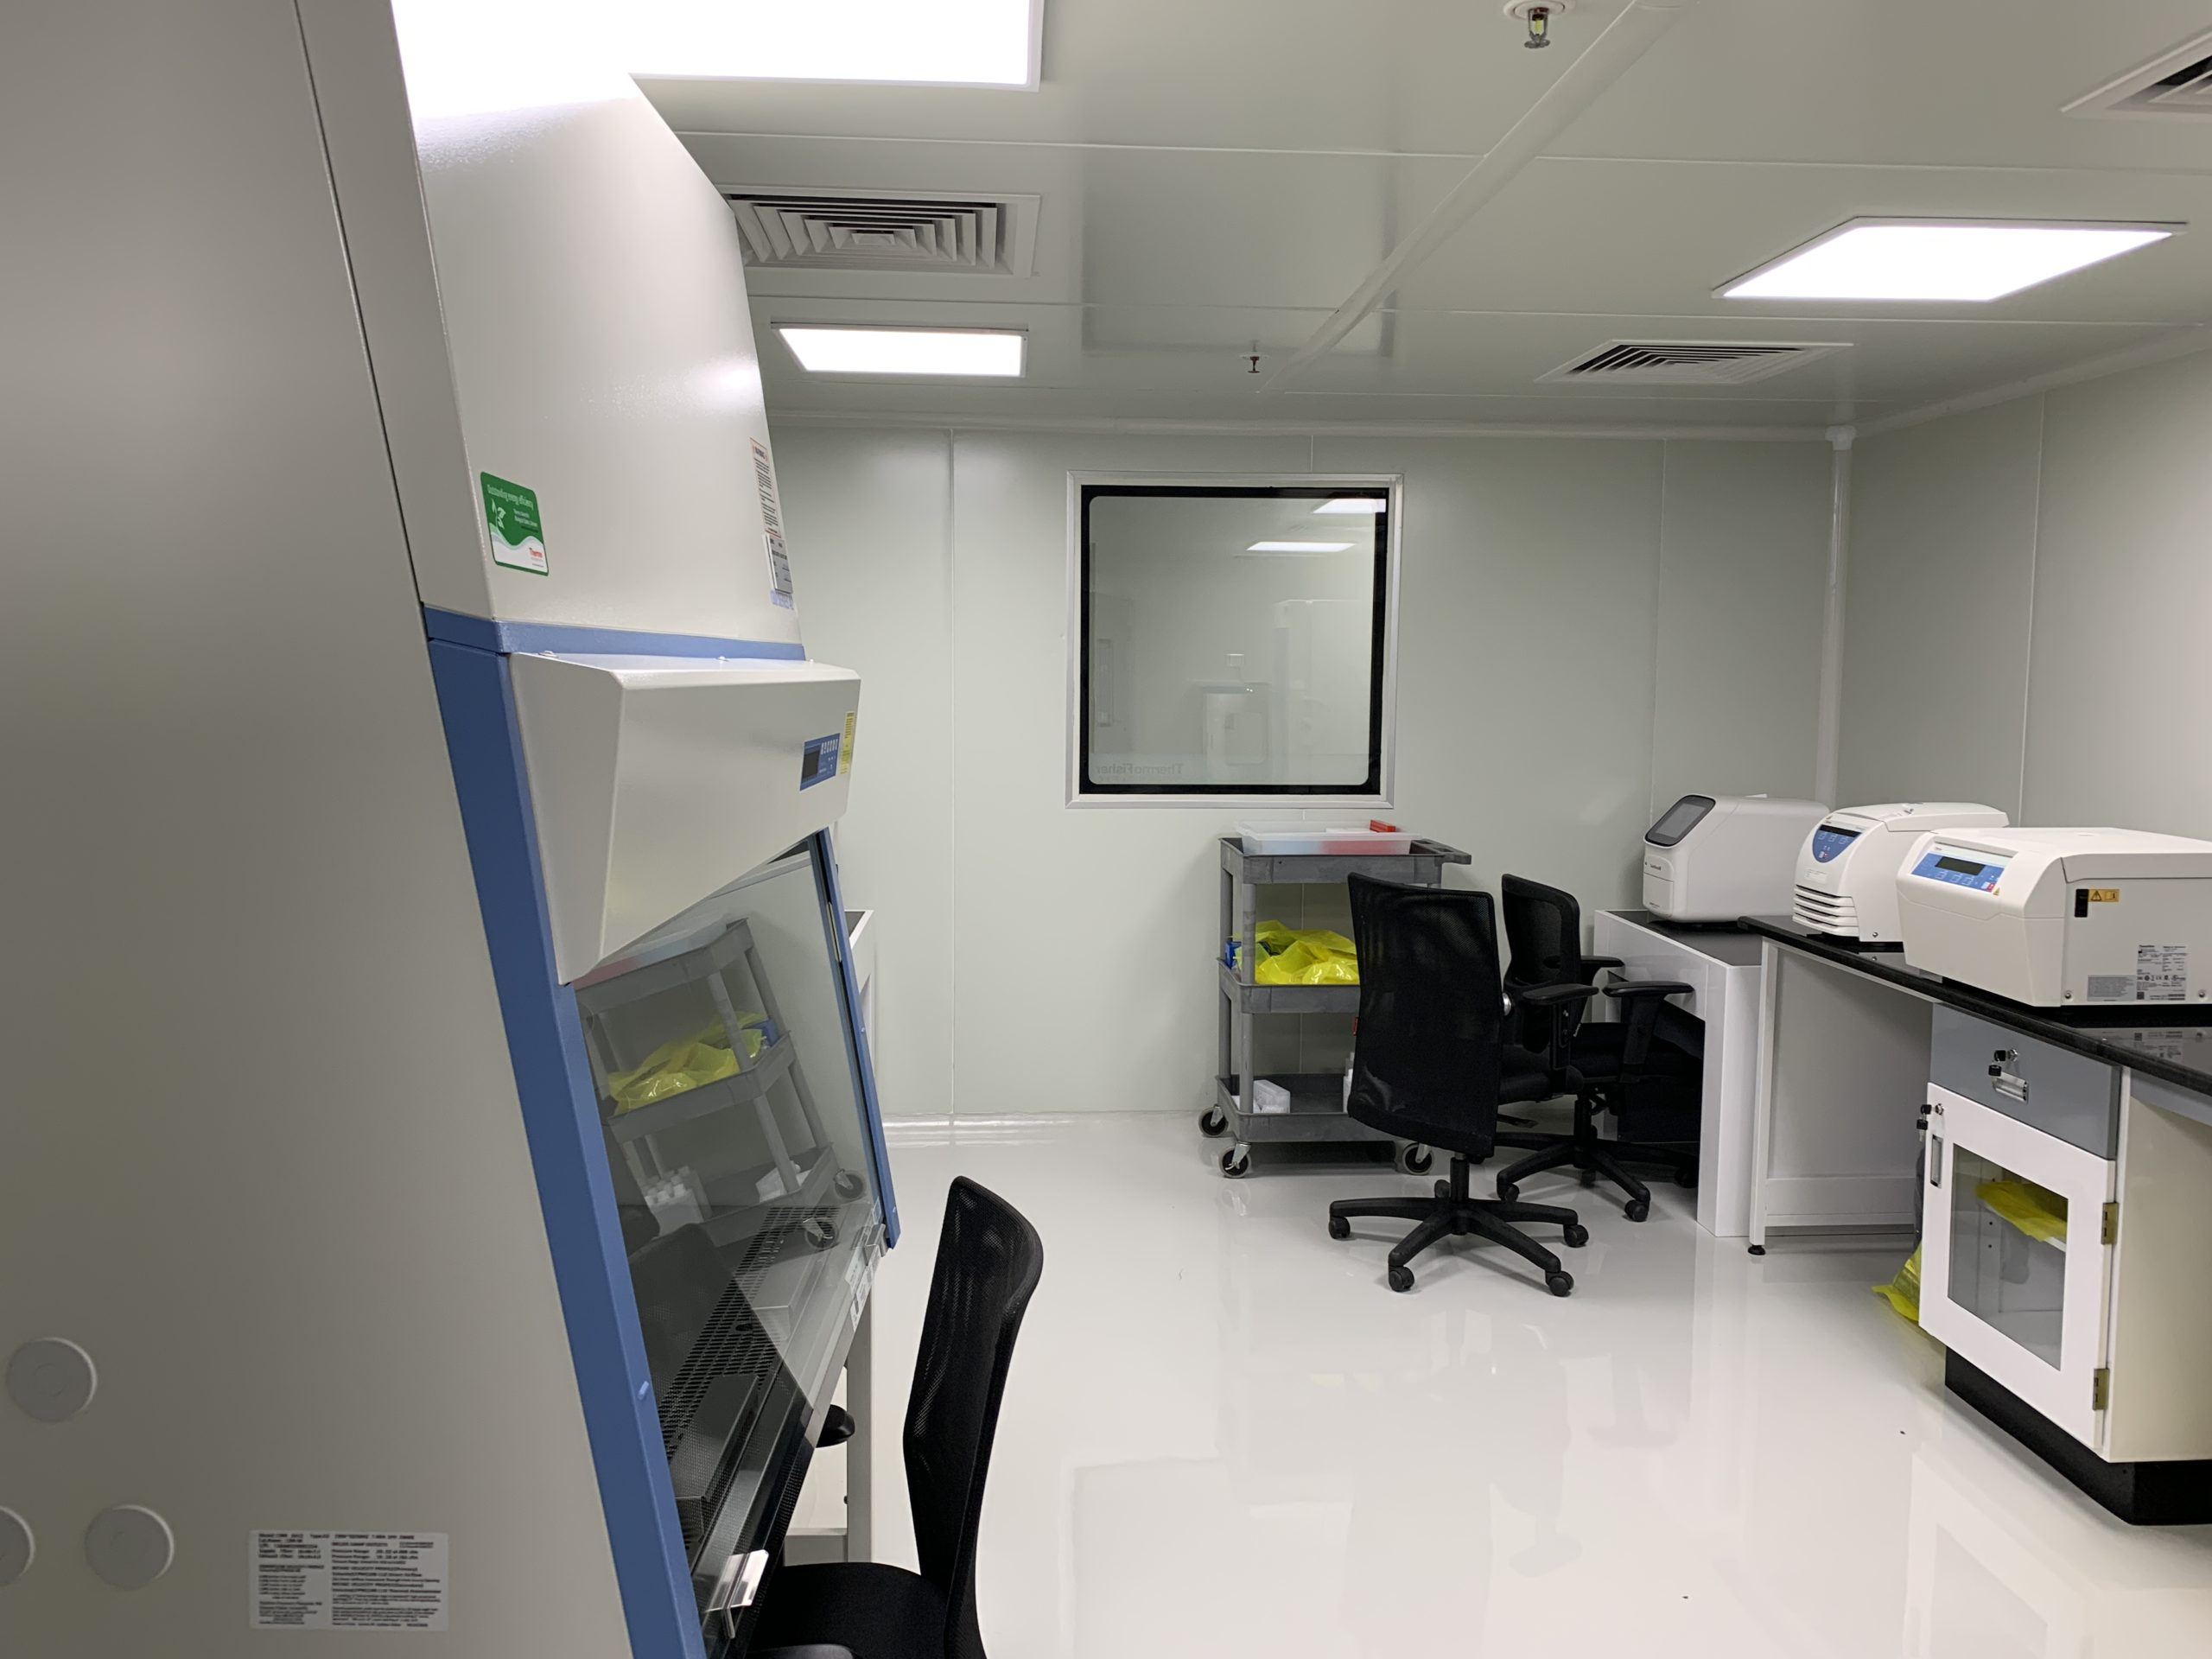 New Thermo Fisher Scientific Manufacturing Facility in Bengaluru to Produce reliable COVID-19 Testing Kits in India for India